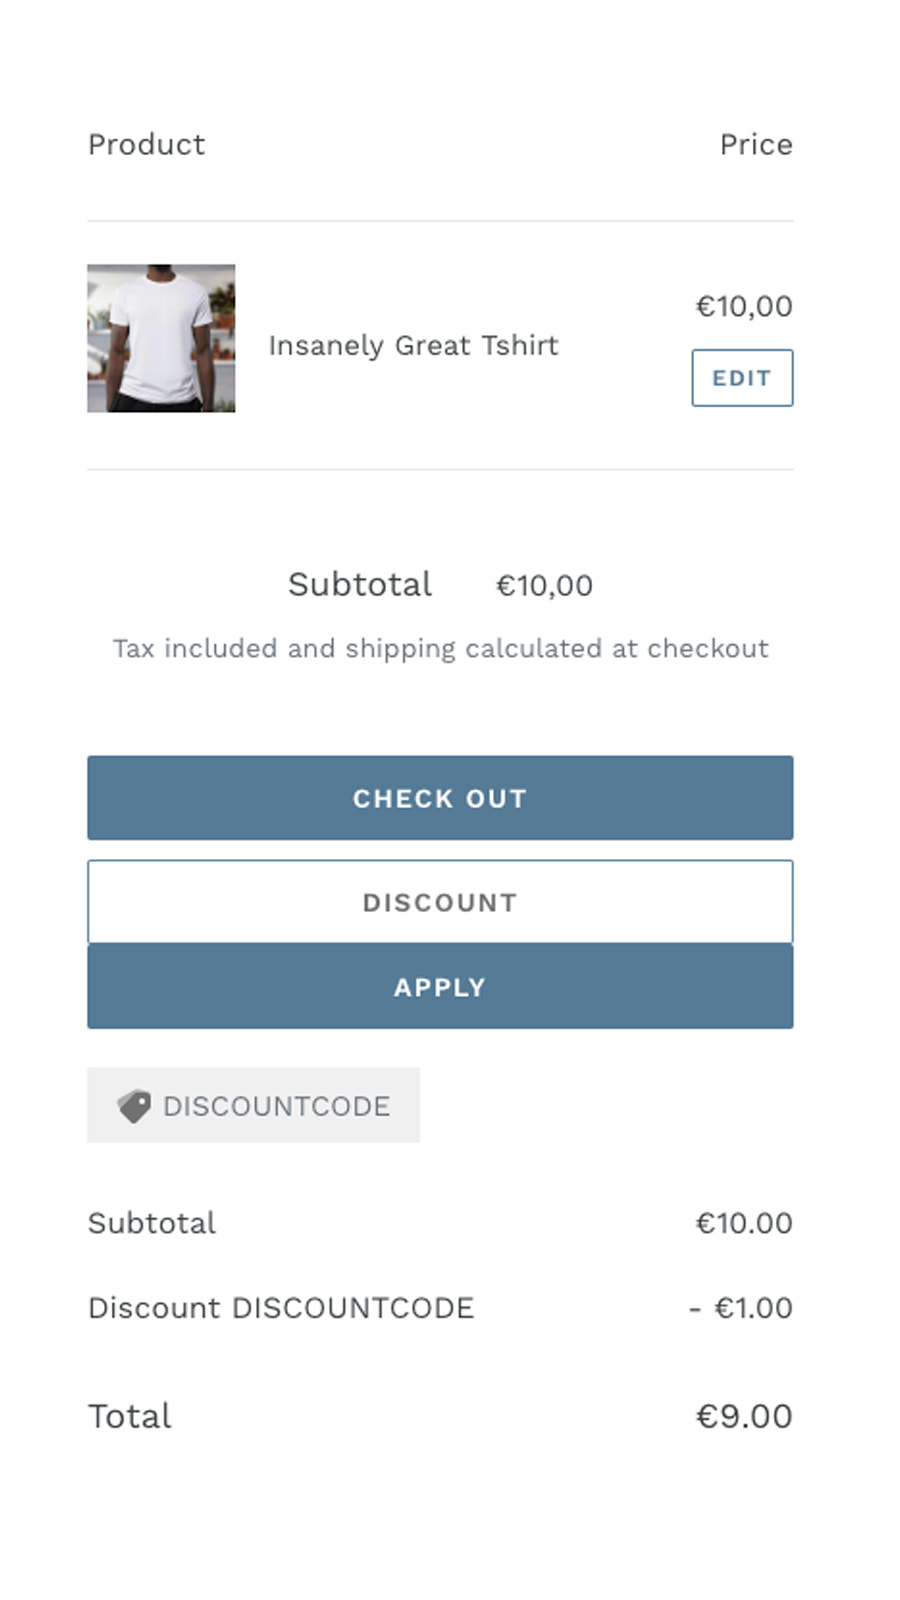 Discountcode input field on the cart page